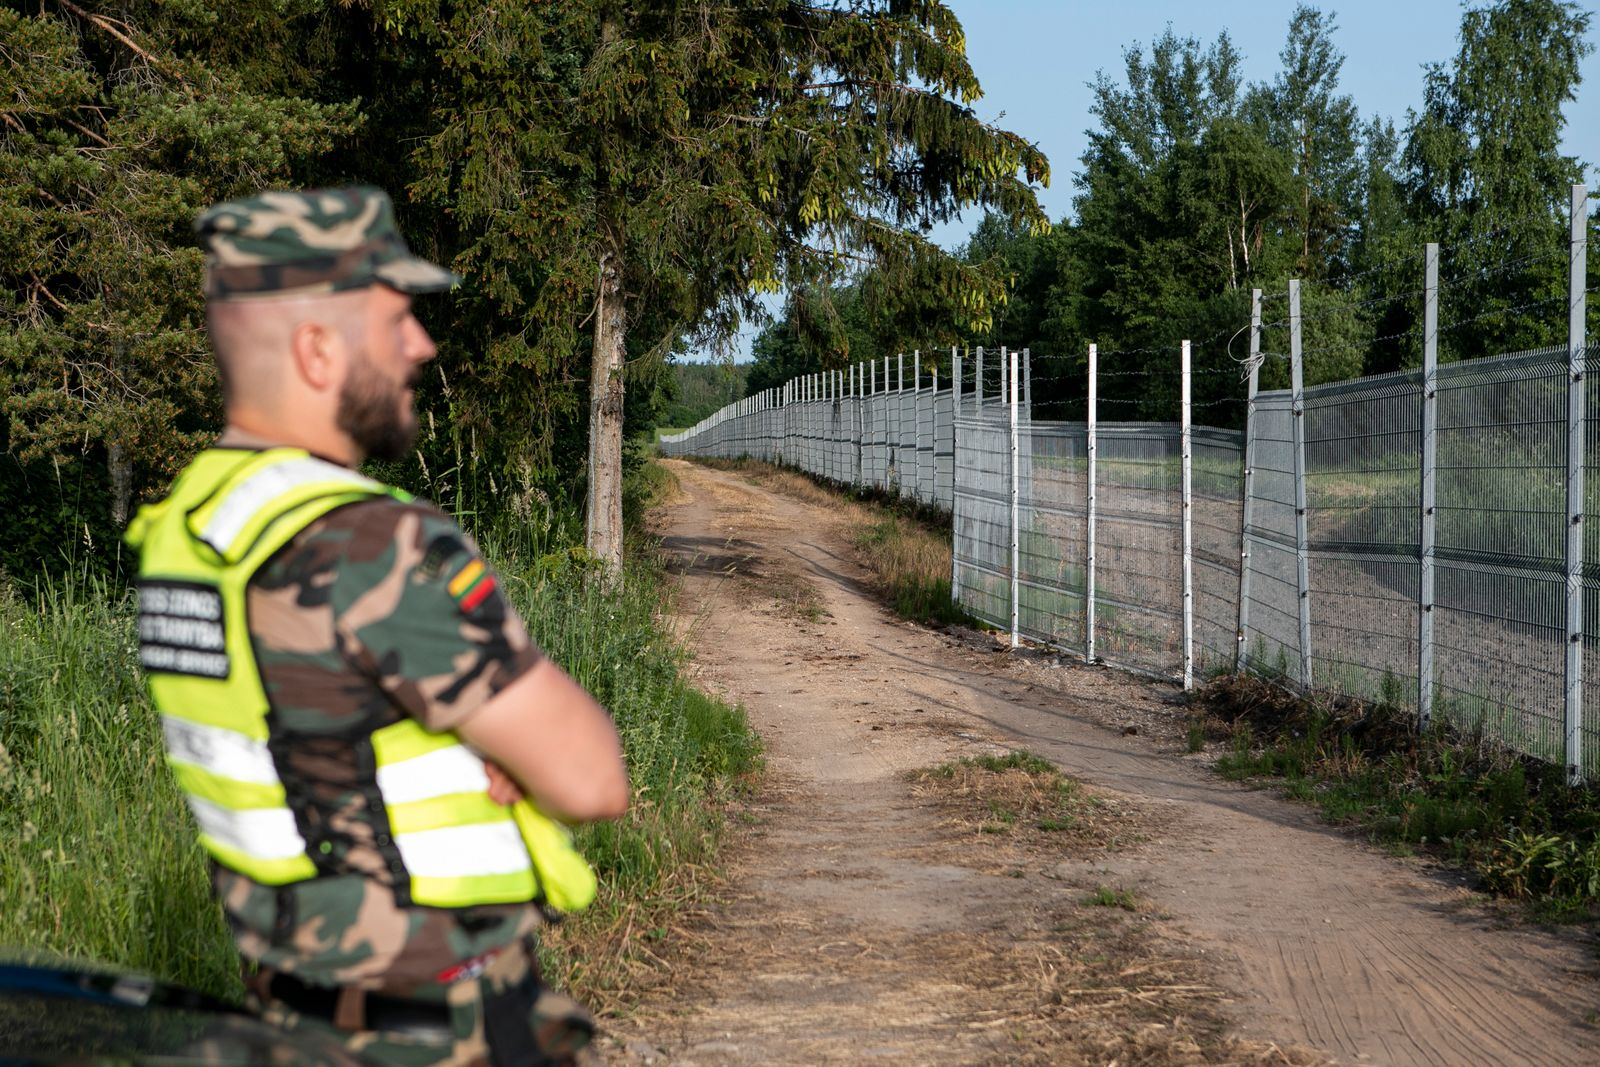 Lithuanian Border Patrols As Illegal Migrant Crossings From Belarus Multiply